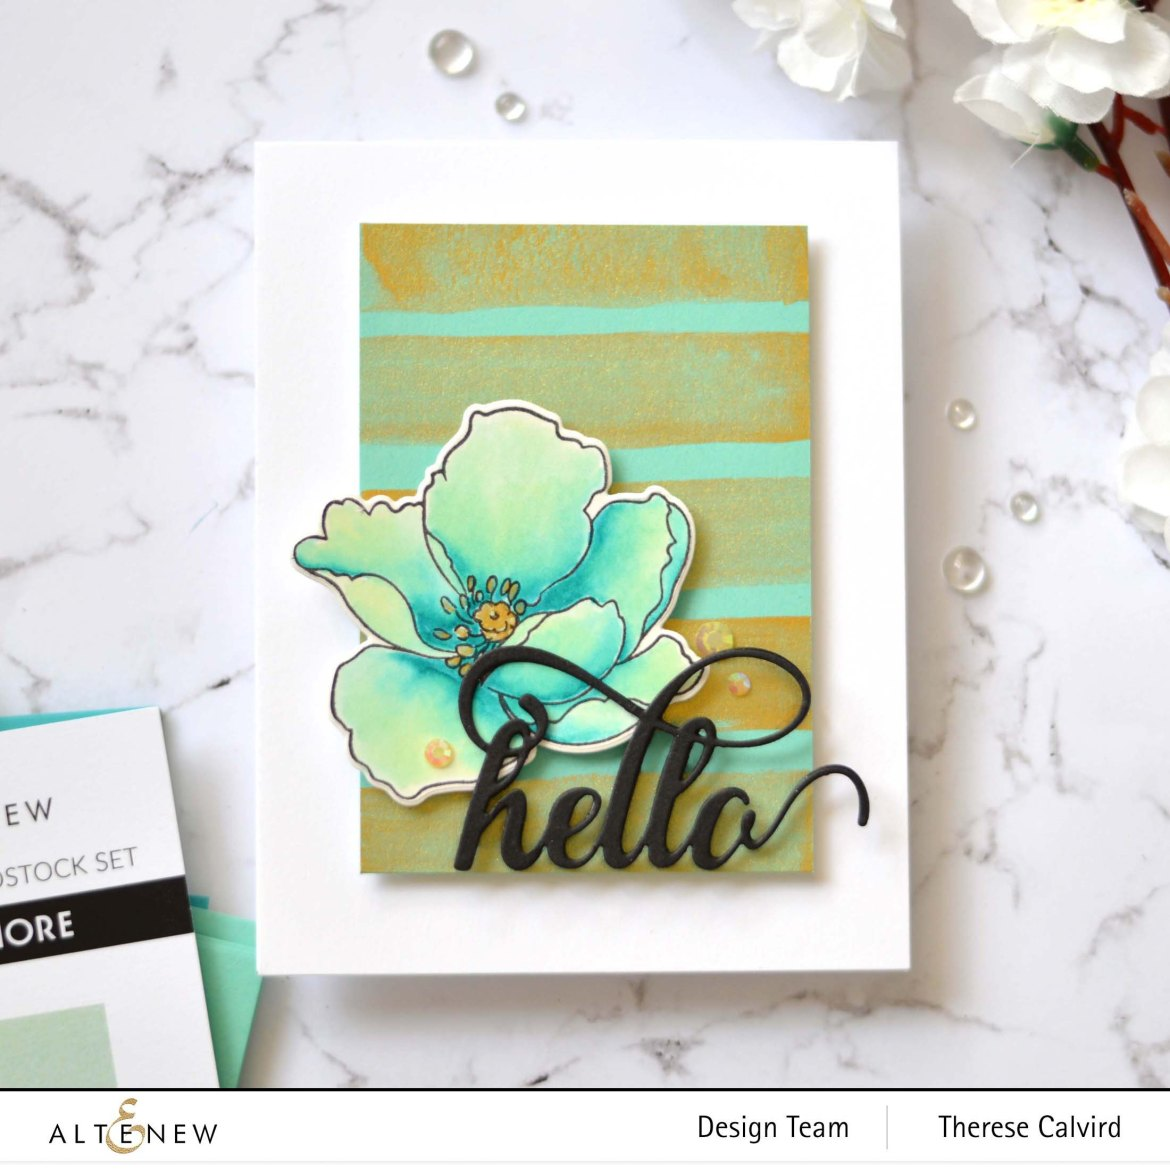 Altenew - Metallic Watercolor - Take 2 With Therese (card video) 1 copy